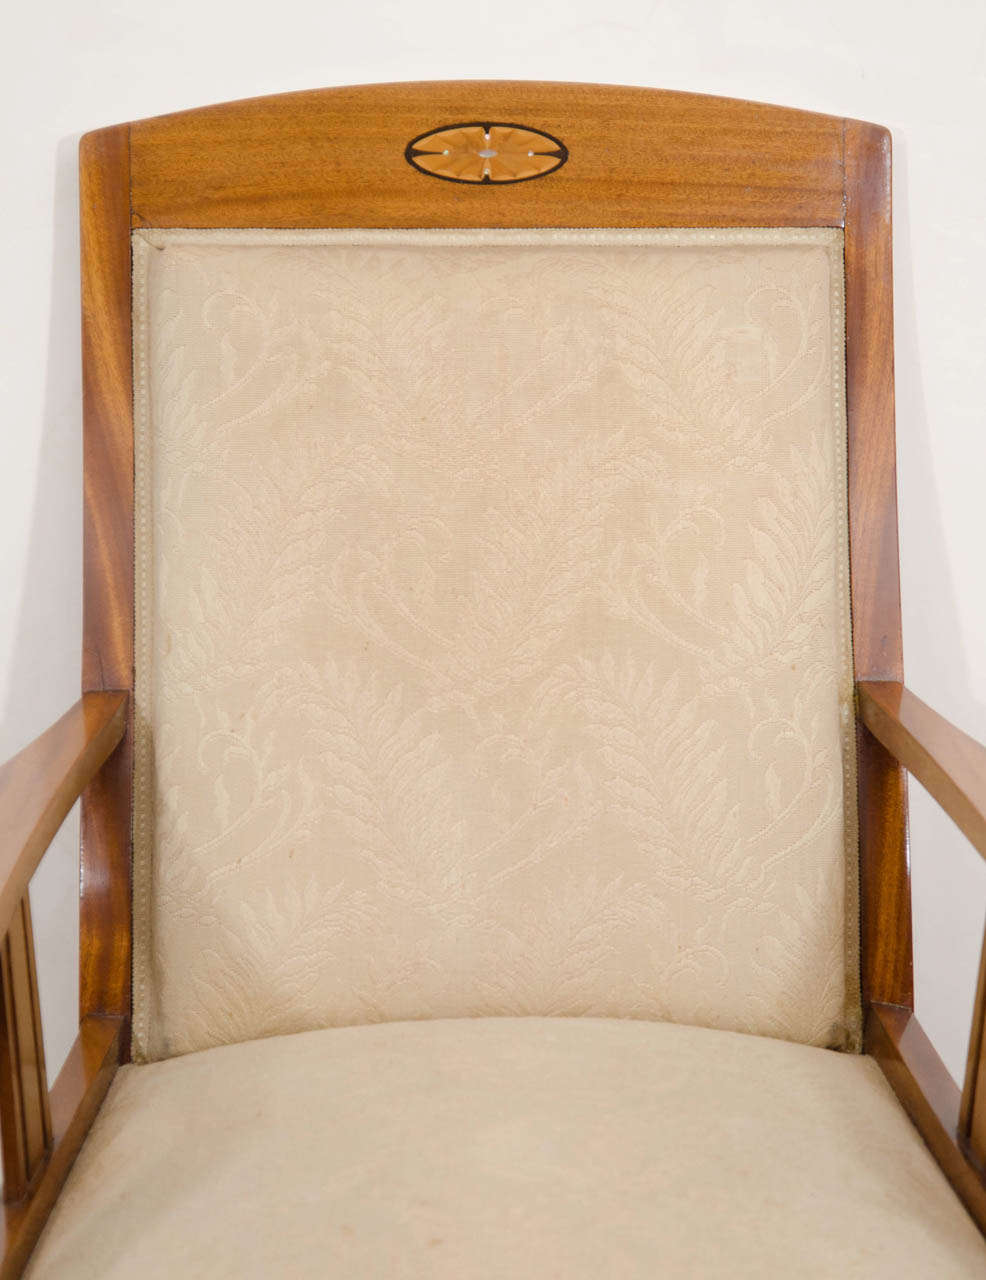 Jugendstil Mahogany Salon Chairs with Ebony, Birch and Mother-of-Pearl Inlay 3